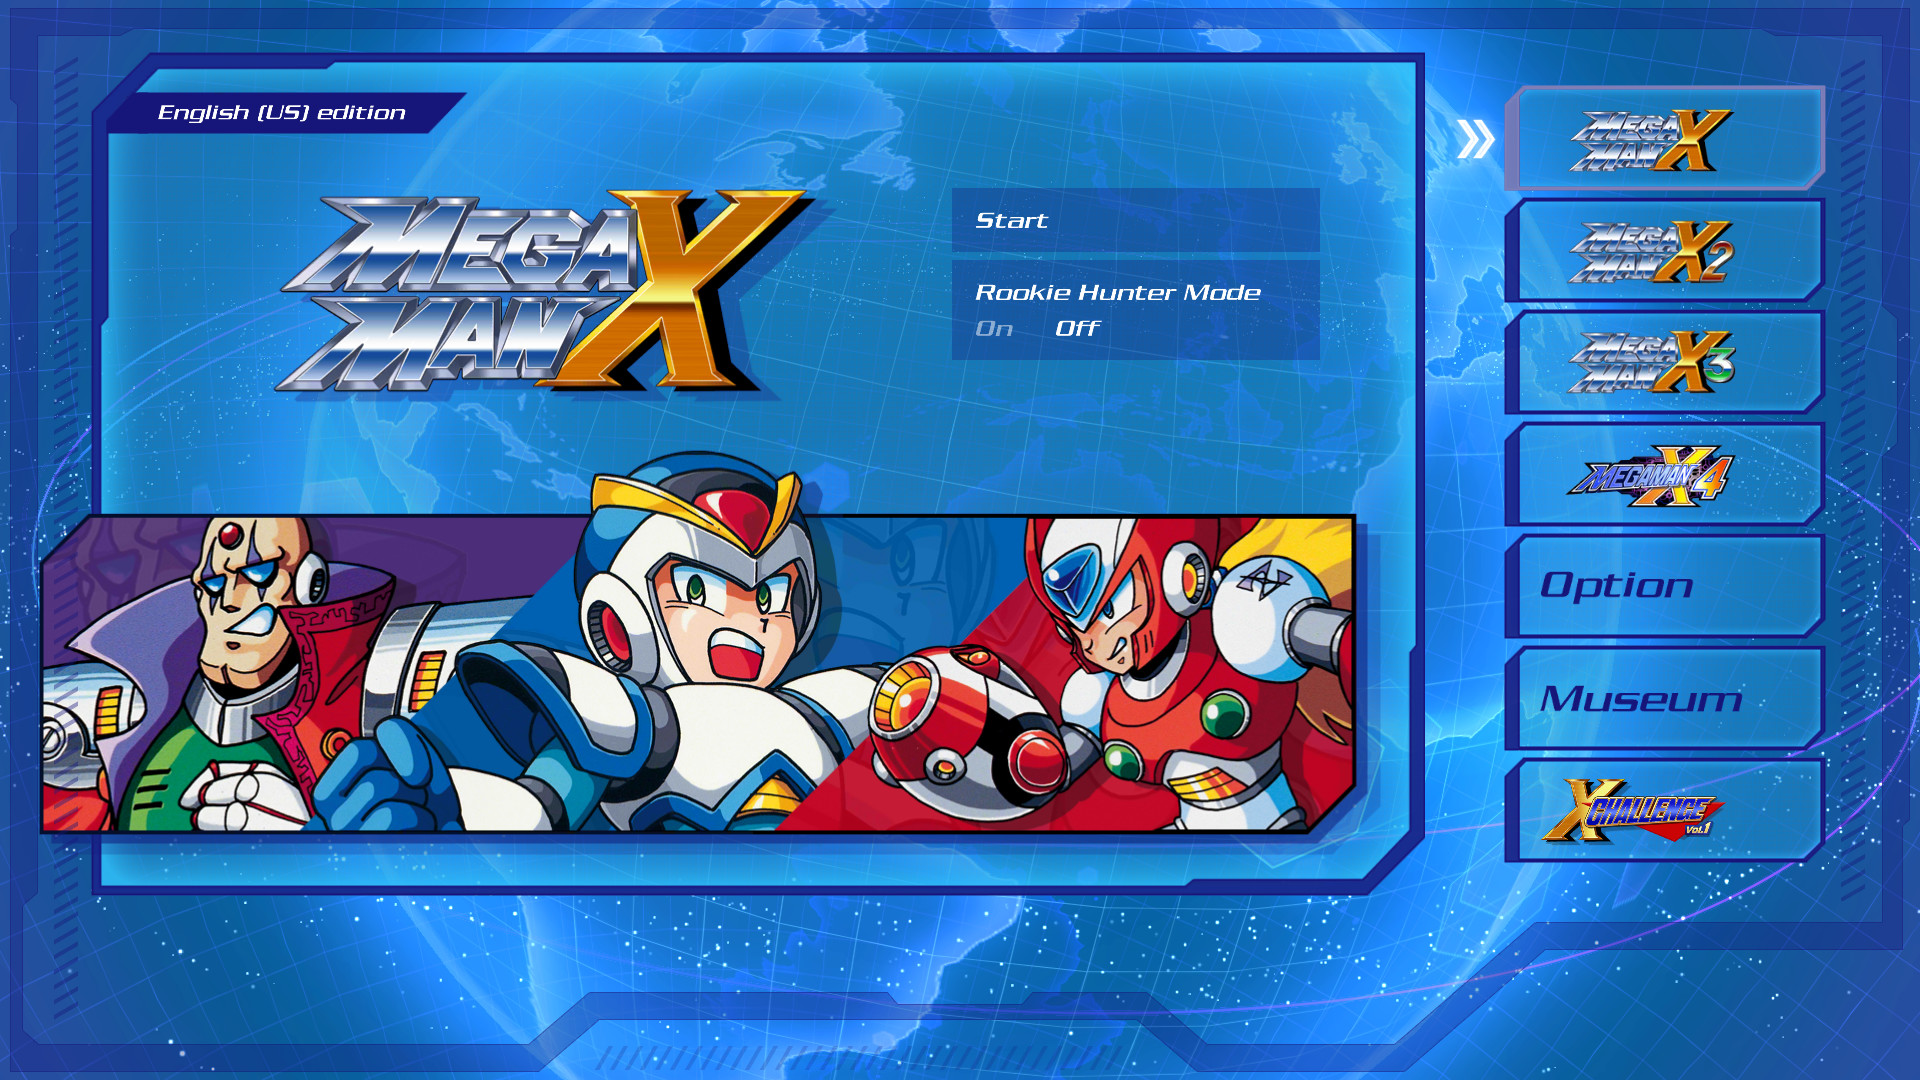 mega man x4 mobile apk